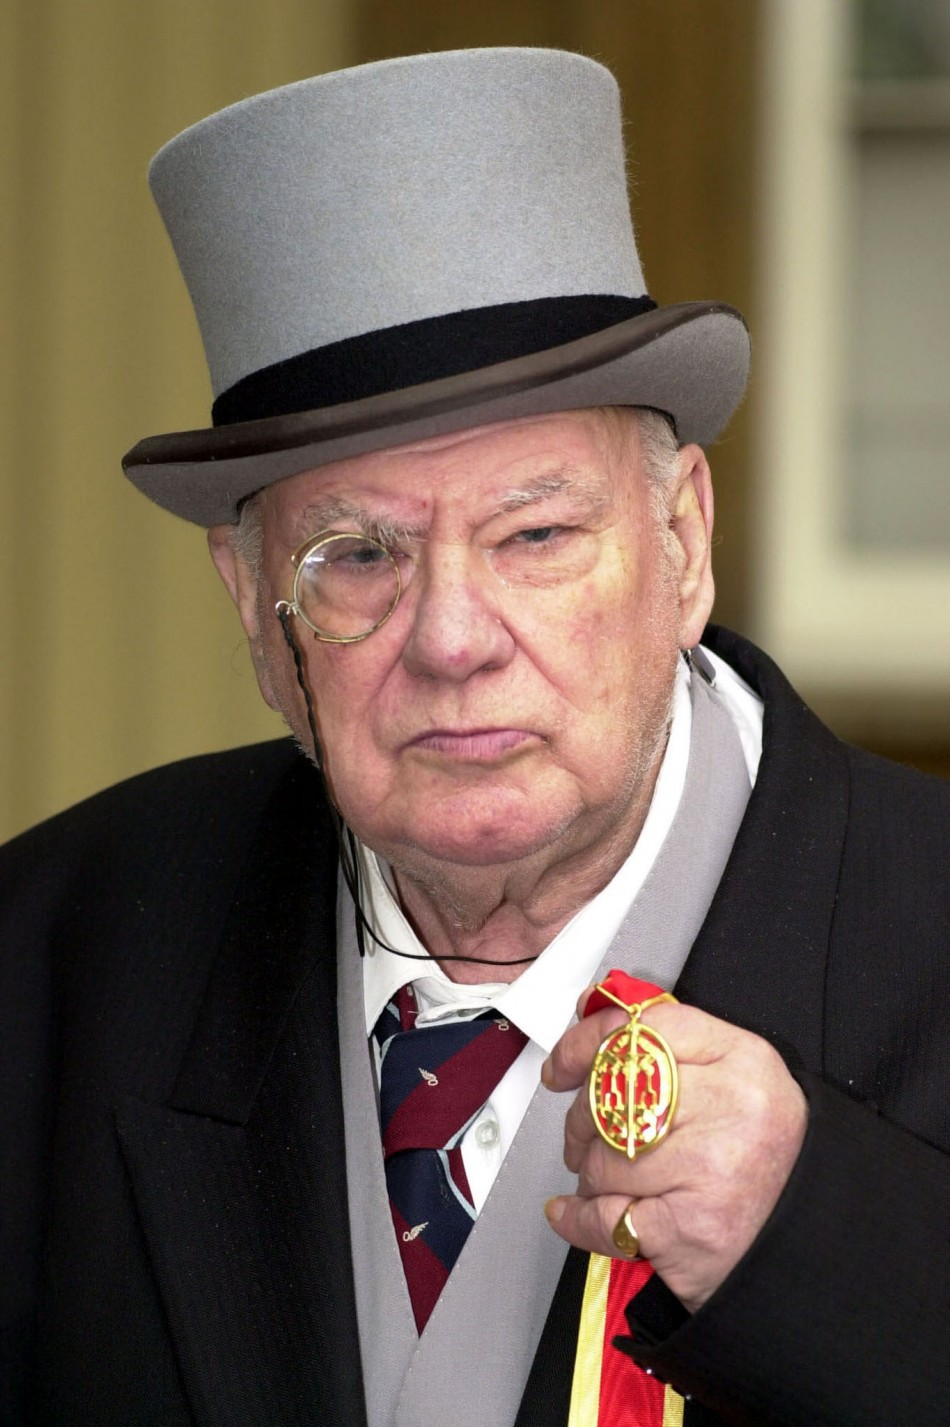 Astronomer Sir Patrick Moore with his knighthood that he received from The Prince of Wales at Buckingham Palace in London March 2, 2001 (Photo: Reuters)